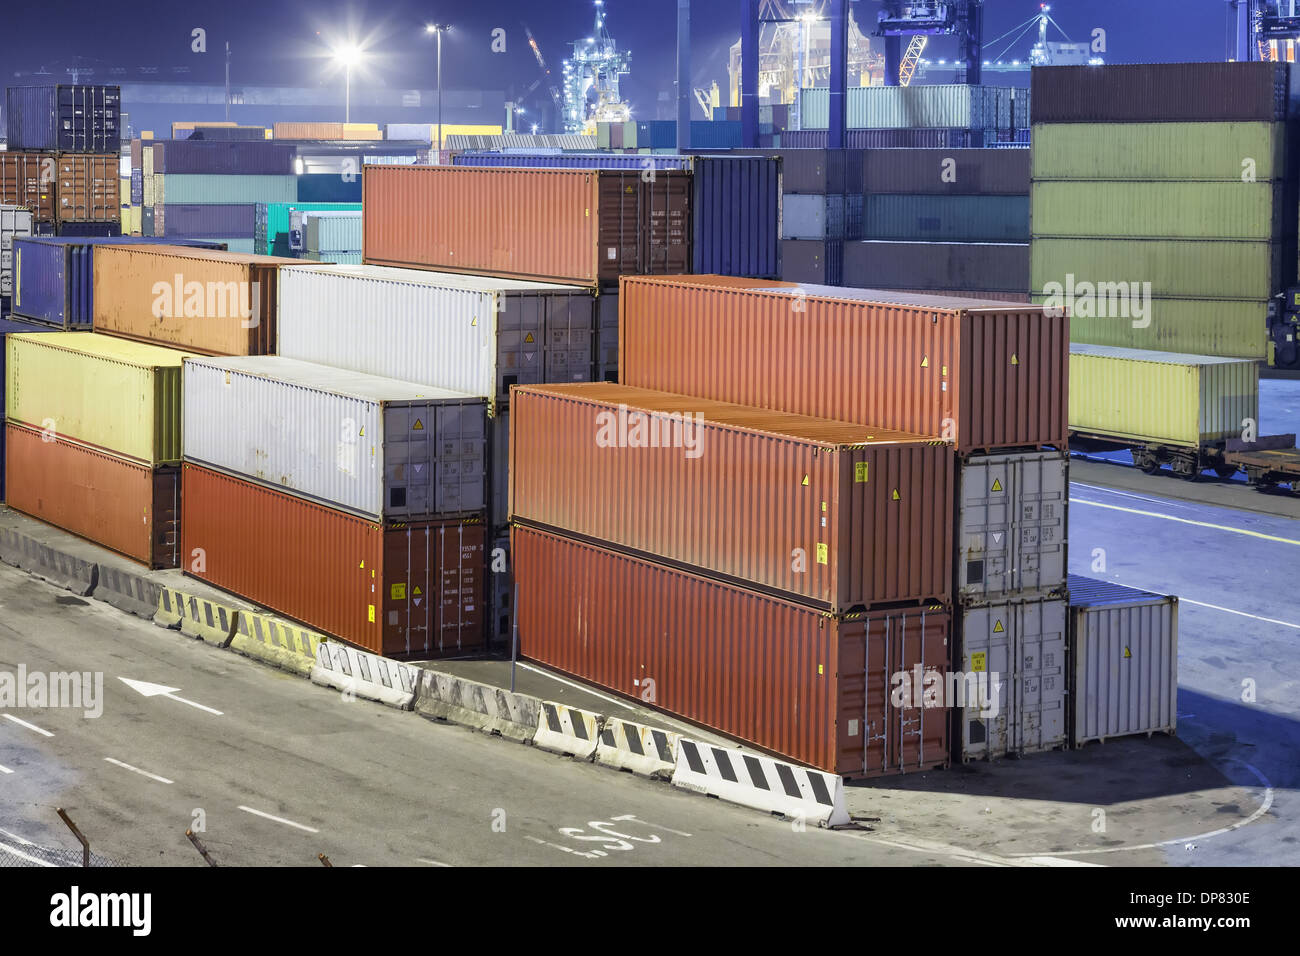 container operation in harbor by night - Stock Image